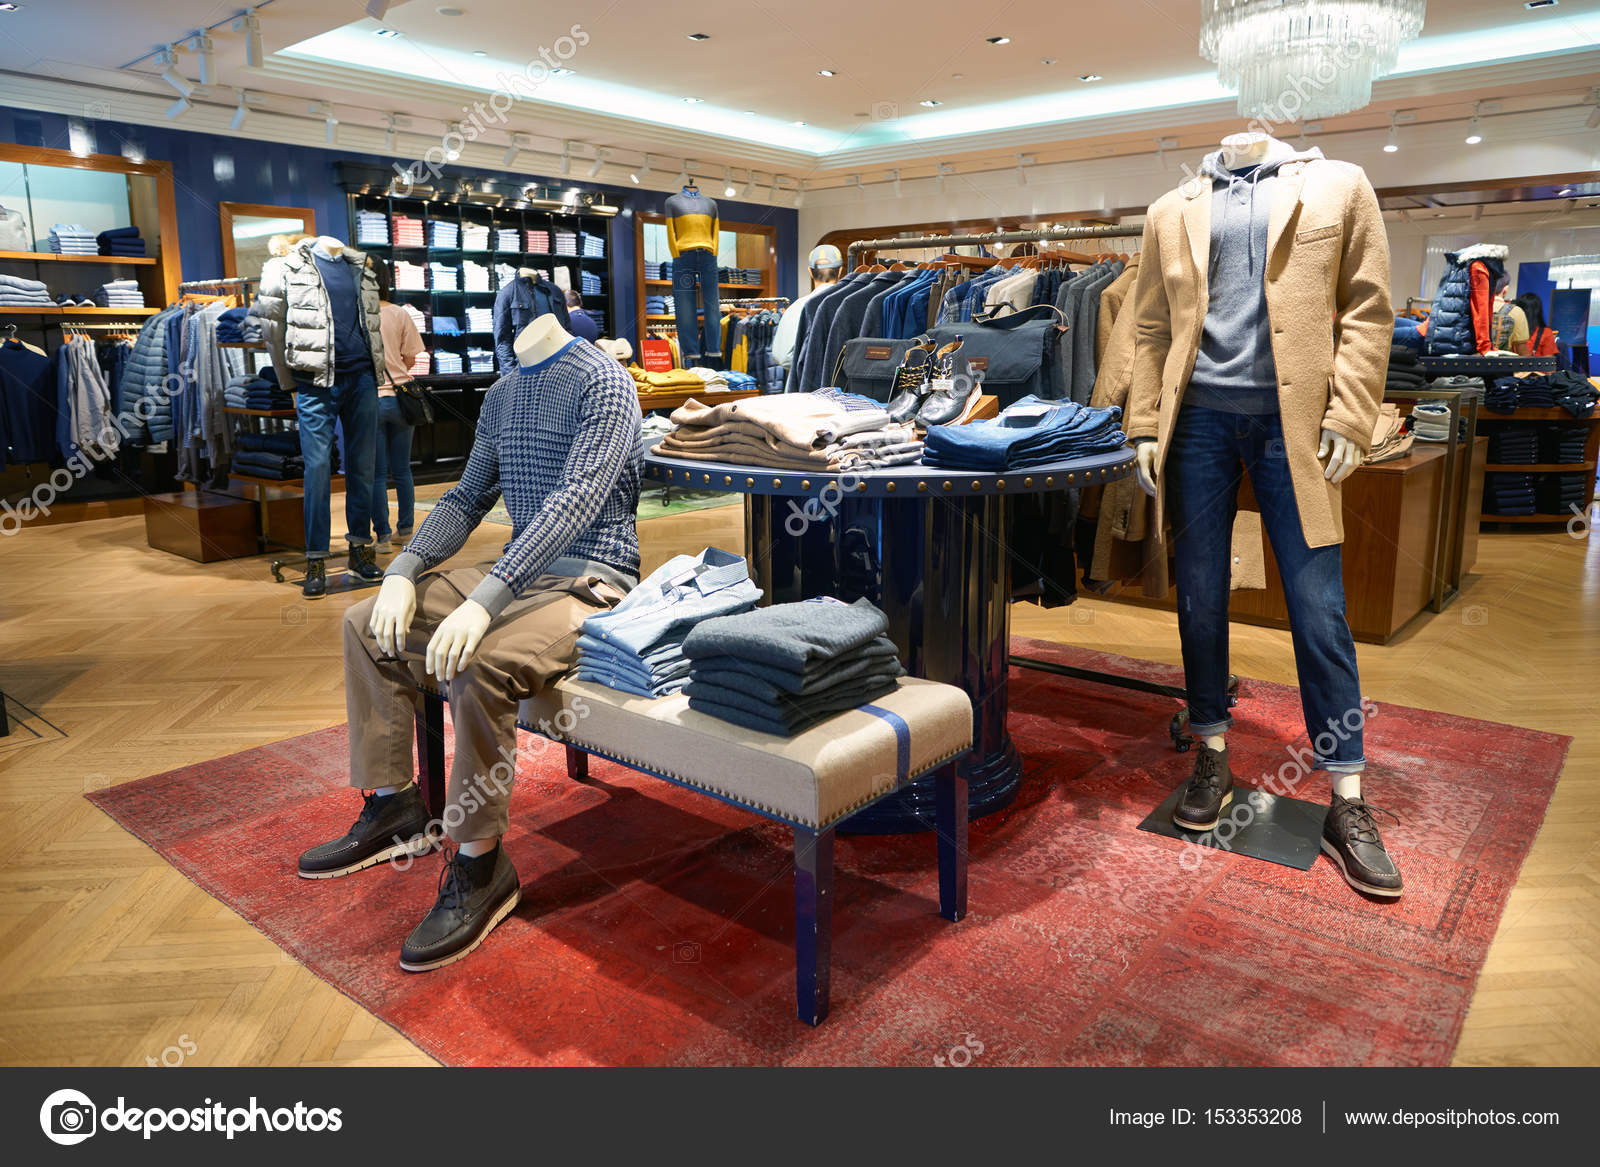 041e6613 Tommy Hilfiger store in Hong Kong – Stock Editorial Photo © teamtime ...